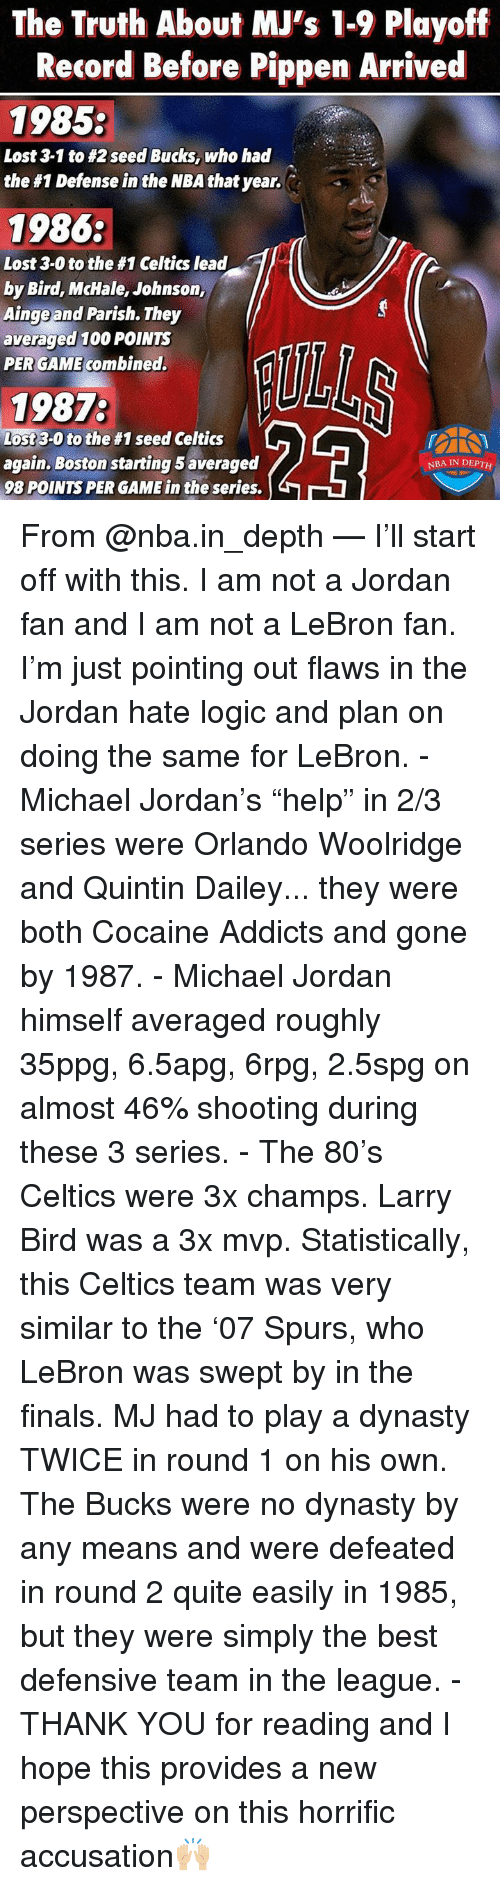 "Anaconda, Finals, and Logic: The Truth About MJ's 1-9 Playoff  Record Before Pippen Arrived  1985  Lost 3-1 to #2 seed Bucks, who had  the #1 Defense in the NBA that year.  1986:  Lost 3-0 to the #1 Celtics lead  by Bird, McHale, Johnson,  Ainge and Parish. They  averaged 100 POINTS  PER GAME combined.  1987  Lost 3-0 to the #1 seed Celtics  again, Boston starting 5 averaged  98 POINTS PER GAME in the series.  NBA IN DEPTH From @nba.in_depth — I'll start off with this. I am not a Jordan fan and I am not a LeBron fan. I'm just pointing out flaws in the Jordan hate logic and plan on doing the same for LeBron. - Michael Jordan's ""help"" in 2/3 series were Orlando Woolridge and Quintin Dailey... they were both Cocaine Addicts and gone by 1987. - Michael Jordan himself averaged roughly 35ppg, 6.5apg, 6rpg, 2.5spg on almost 46% shooting during these 3 series. - The 80's Celtics were 3x champs. Larry Bird was a 3x mvp. Statistically, this Celtics team was very similar to the '07 Spurs, who LeBron was swept by in the finals. MJ had to play a dynasty TWICE in round 1 on his own. The Bucks were no dynasty by any means and were defeated in round 2 quite easily in 1985, but they were simply the best defensive team in the league. - THANK YOU for reading and I hope this provides a new perspective on this horrific accusation🙌🏼"